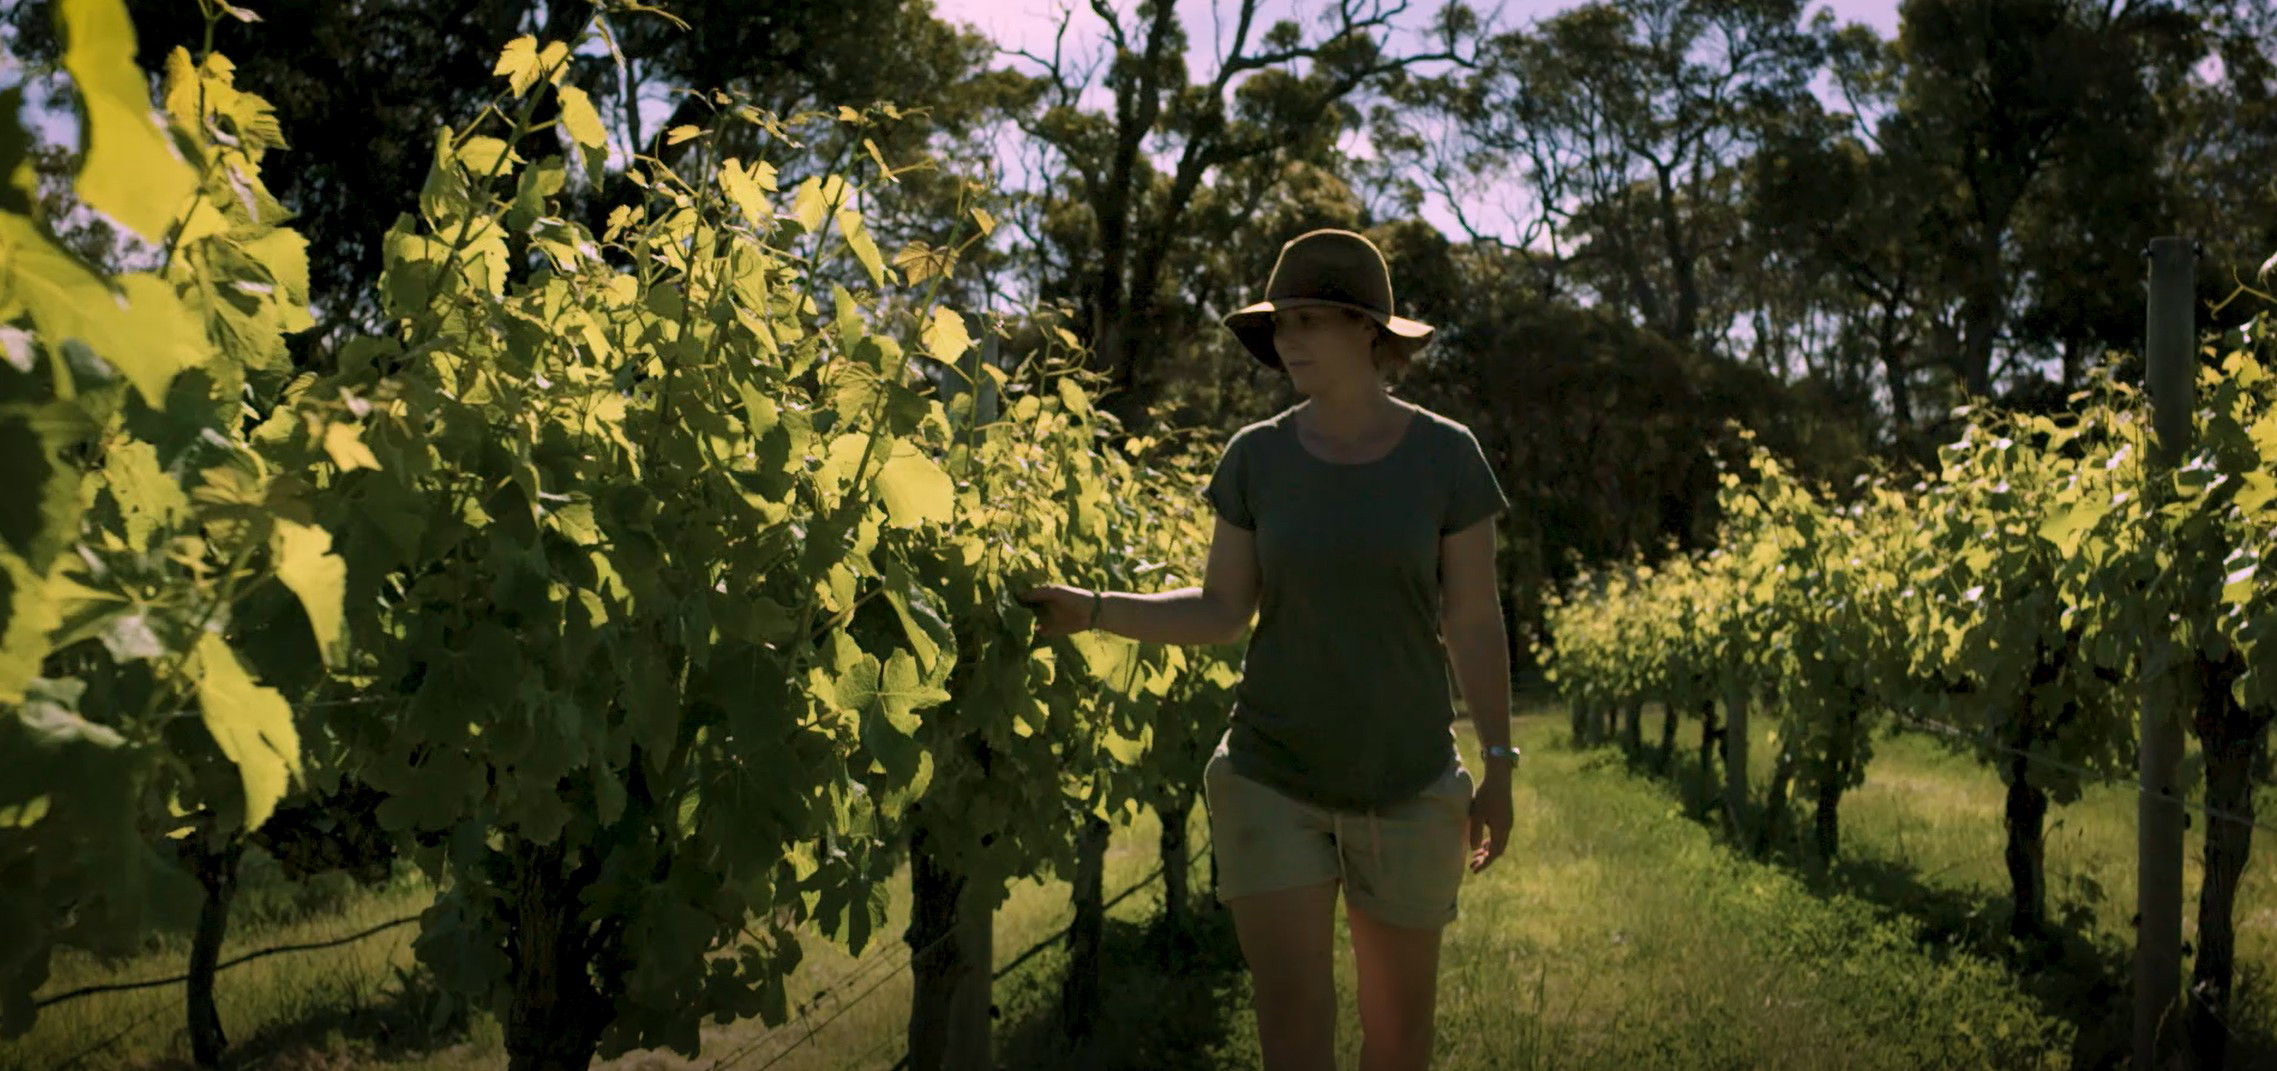 Pursuit of perfection at heart of new 'The Winemaker' trilogy